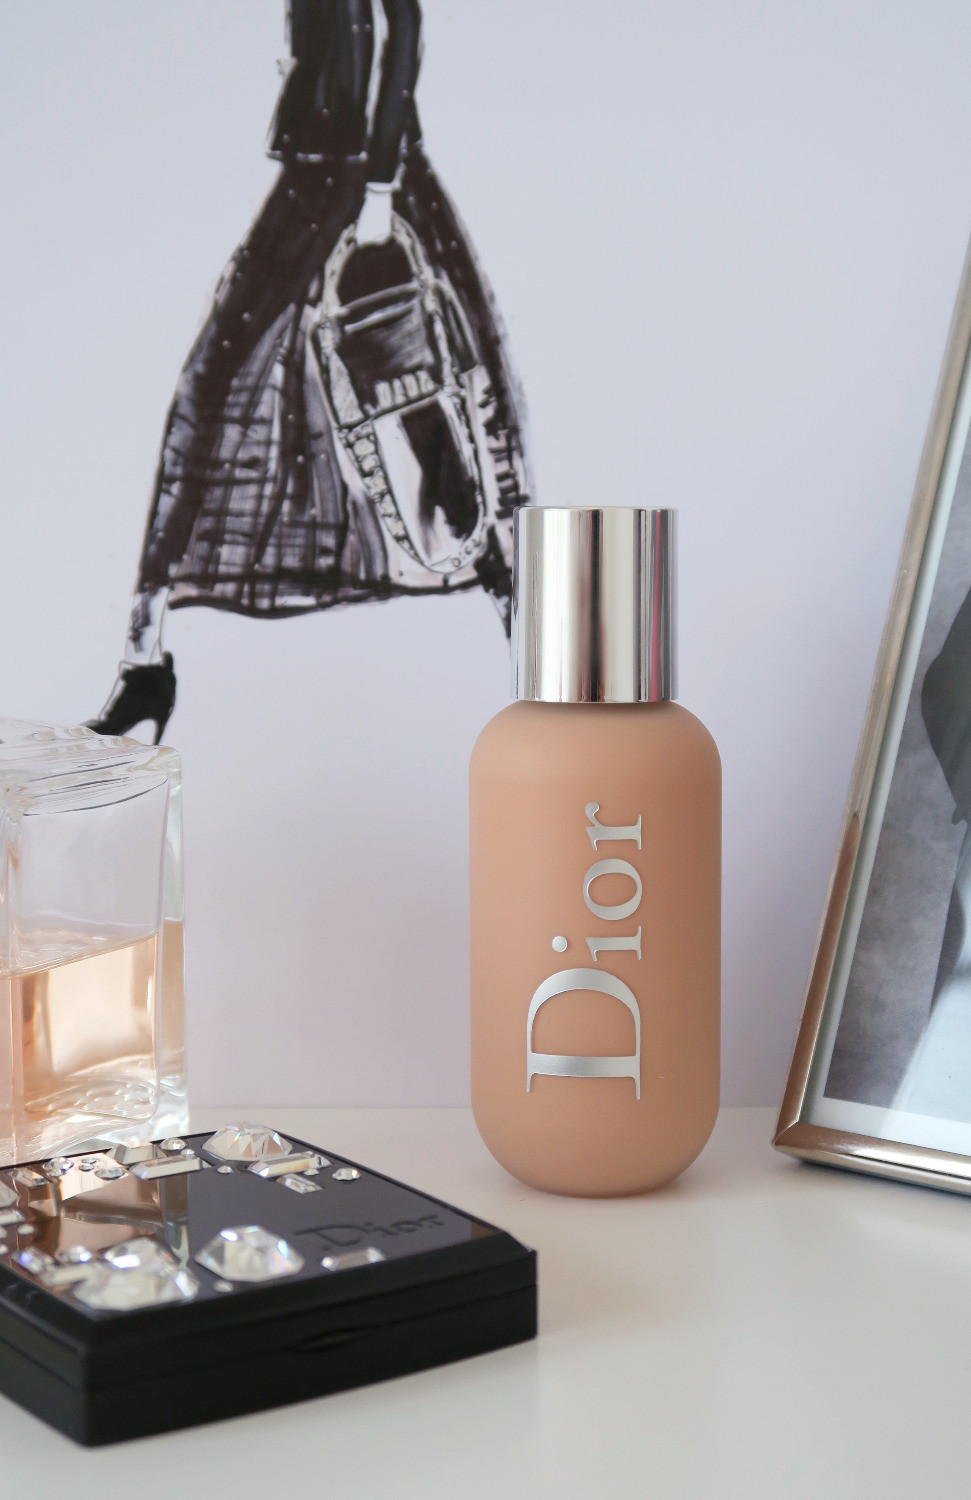 dior backstage face & body foundation review